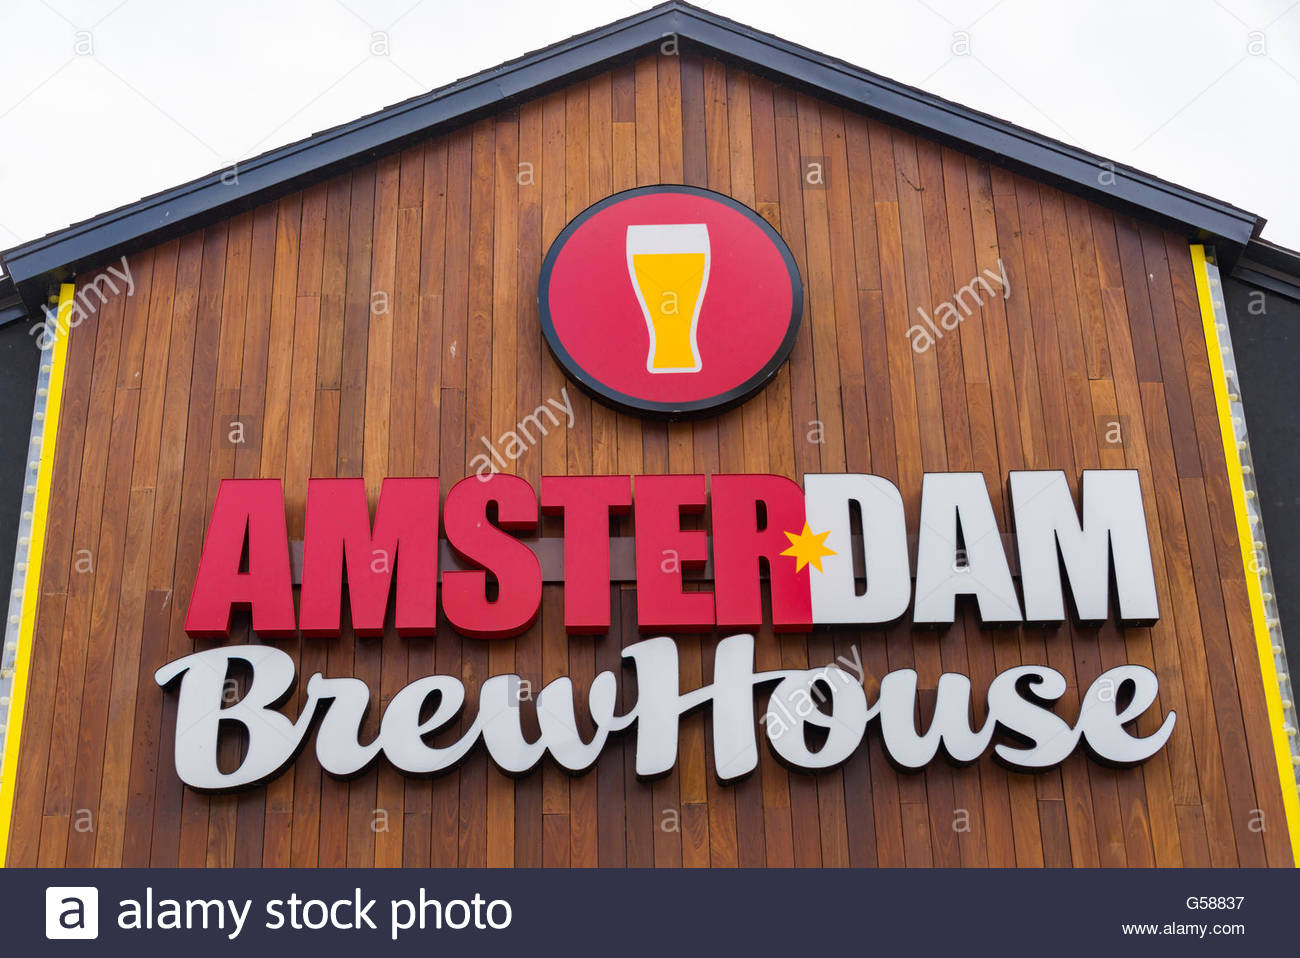 Amsterdam Brew House on the Lake, vintage wooden sign. The Brewery is popular for its beer and outdoor's restaurant - Stock Image